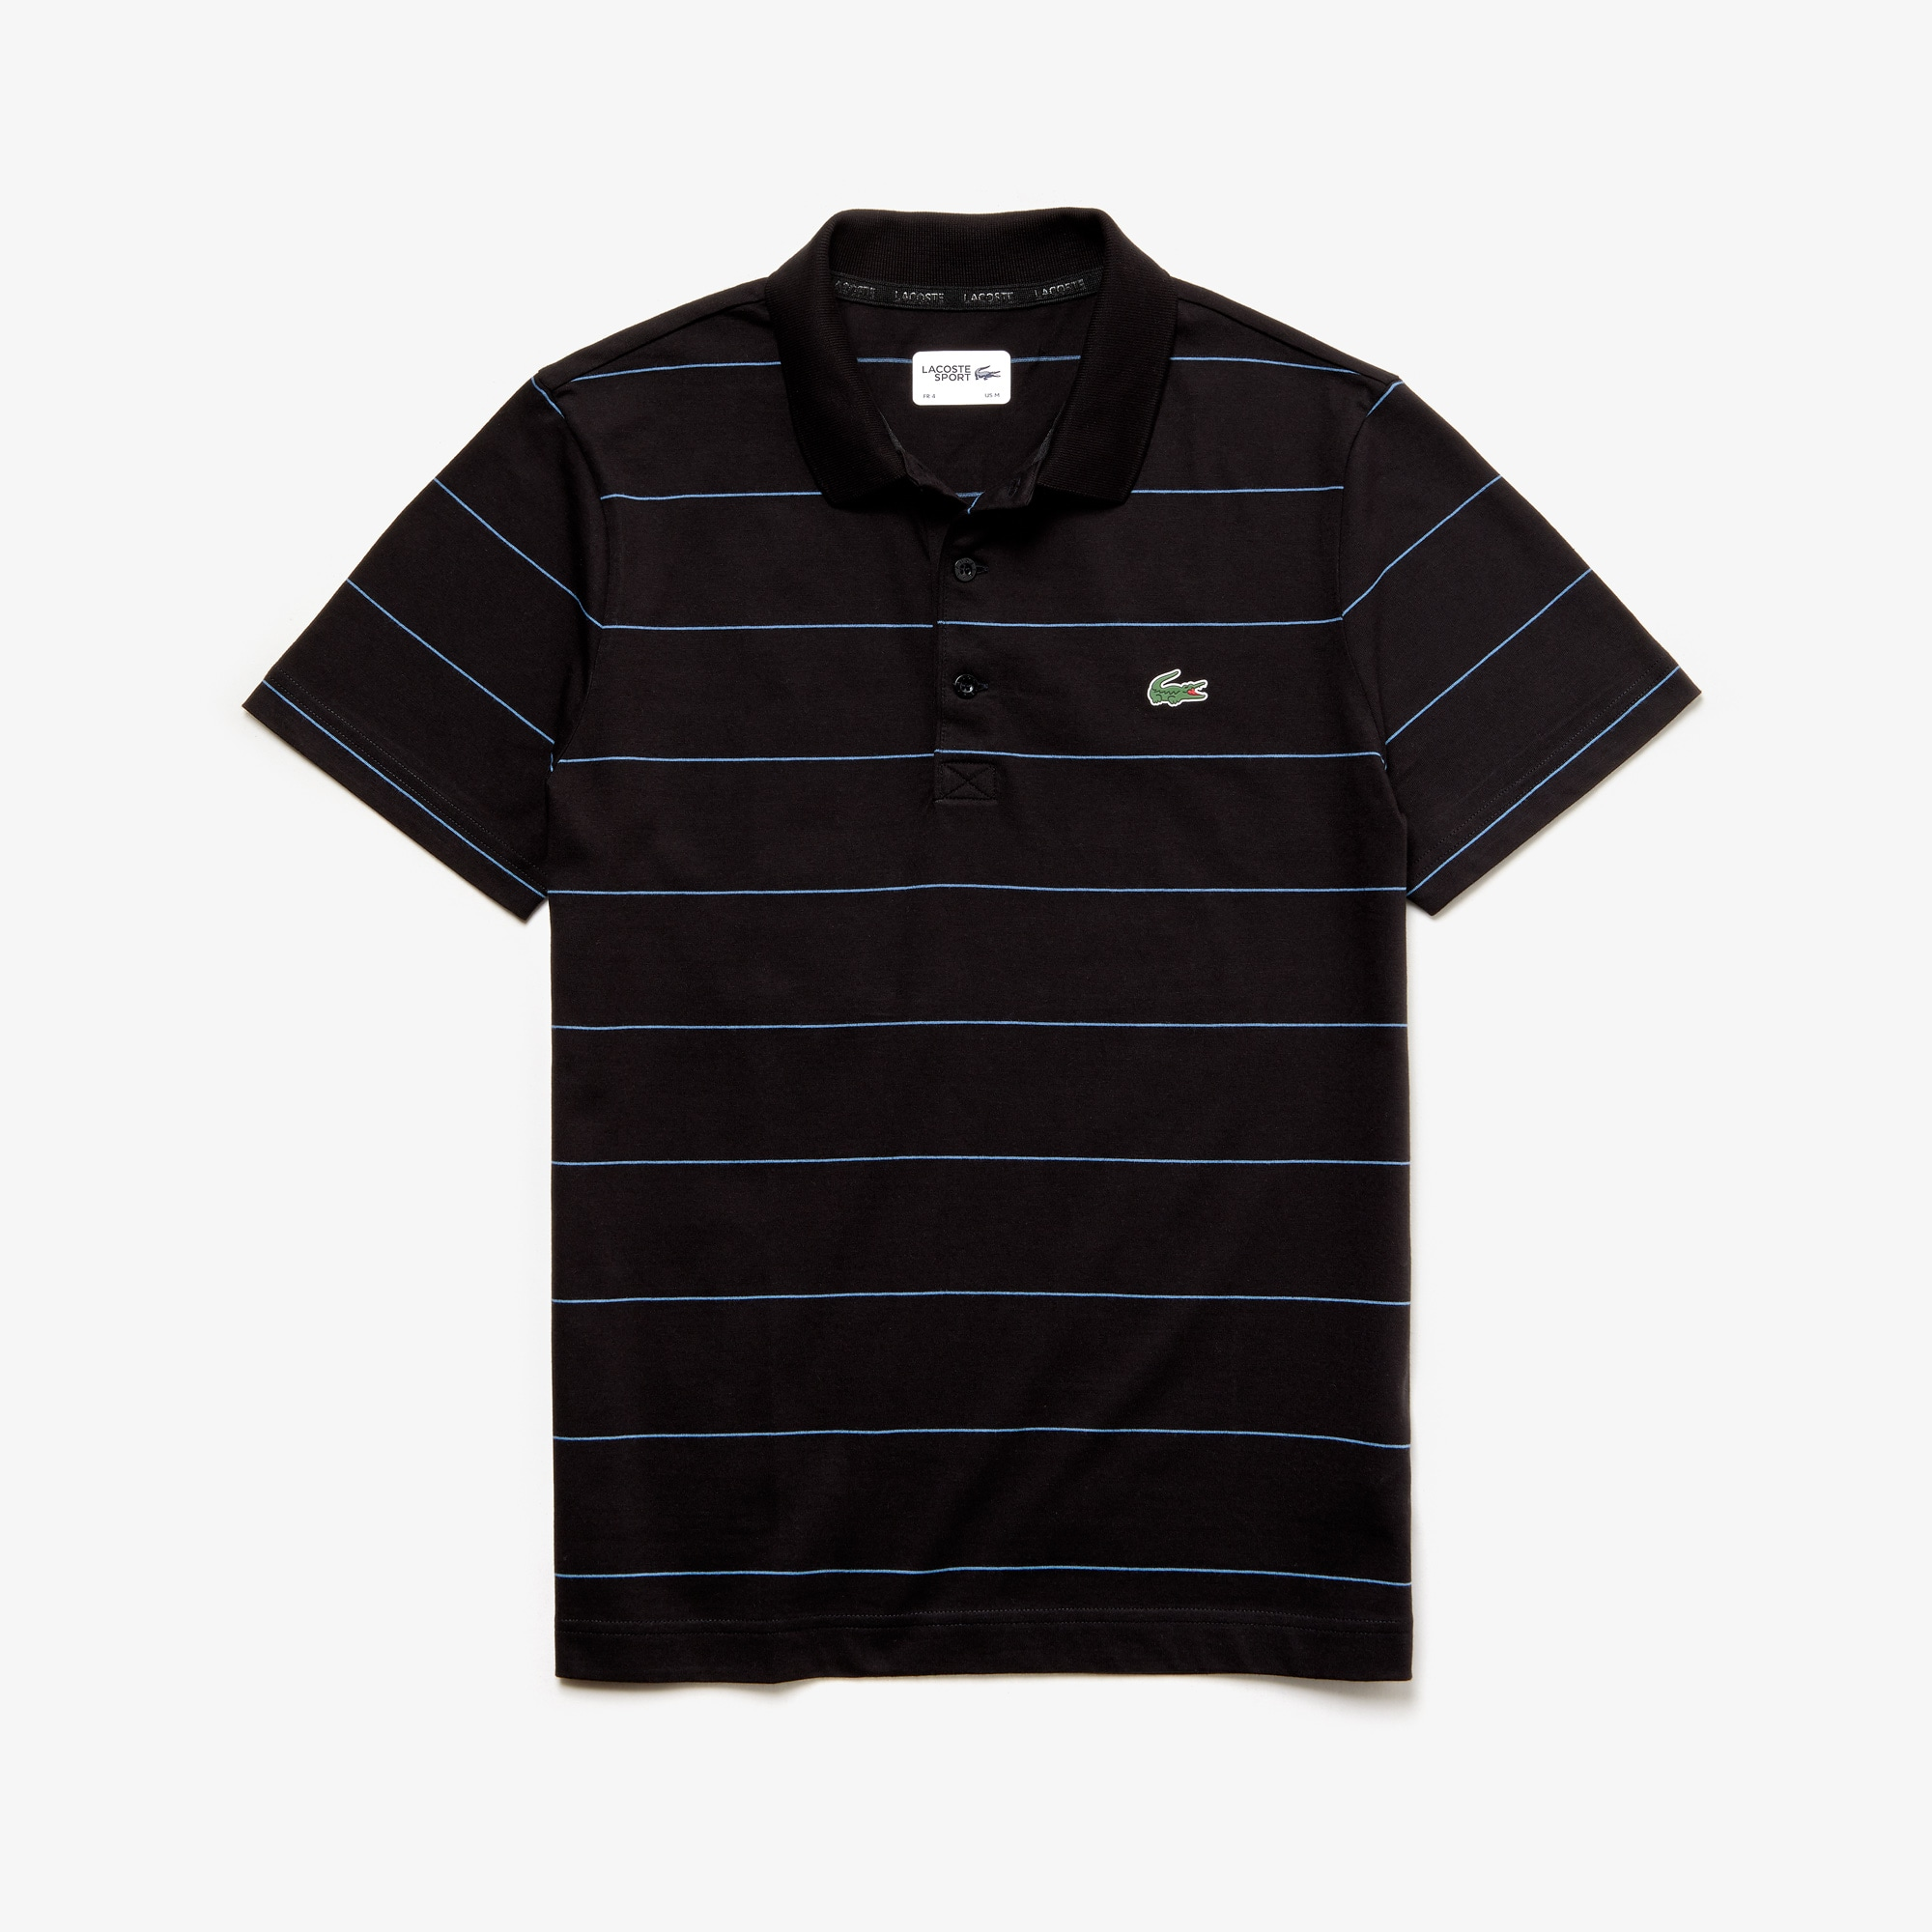 Men's Lacoste SPORT Striped Technical Cotton Tennis Polo Shirt